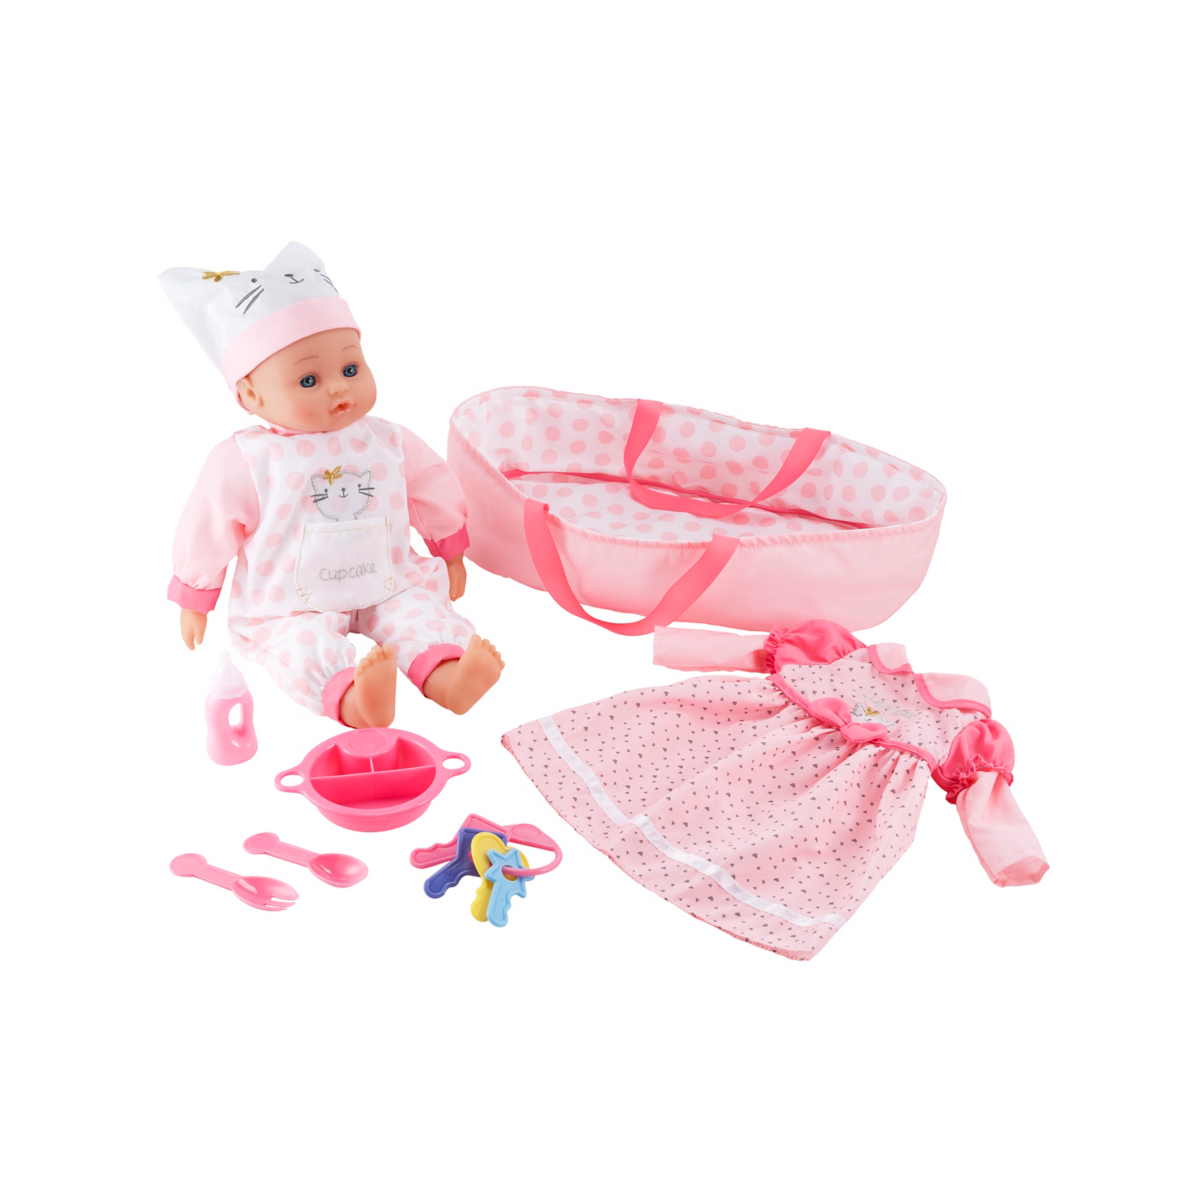 Cupcake Dolly Collection Set